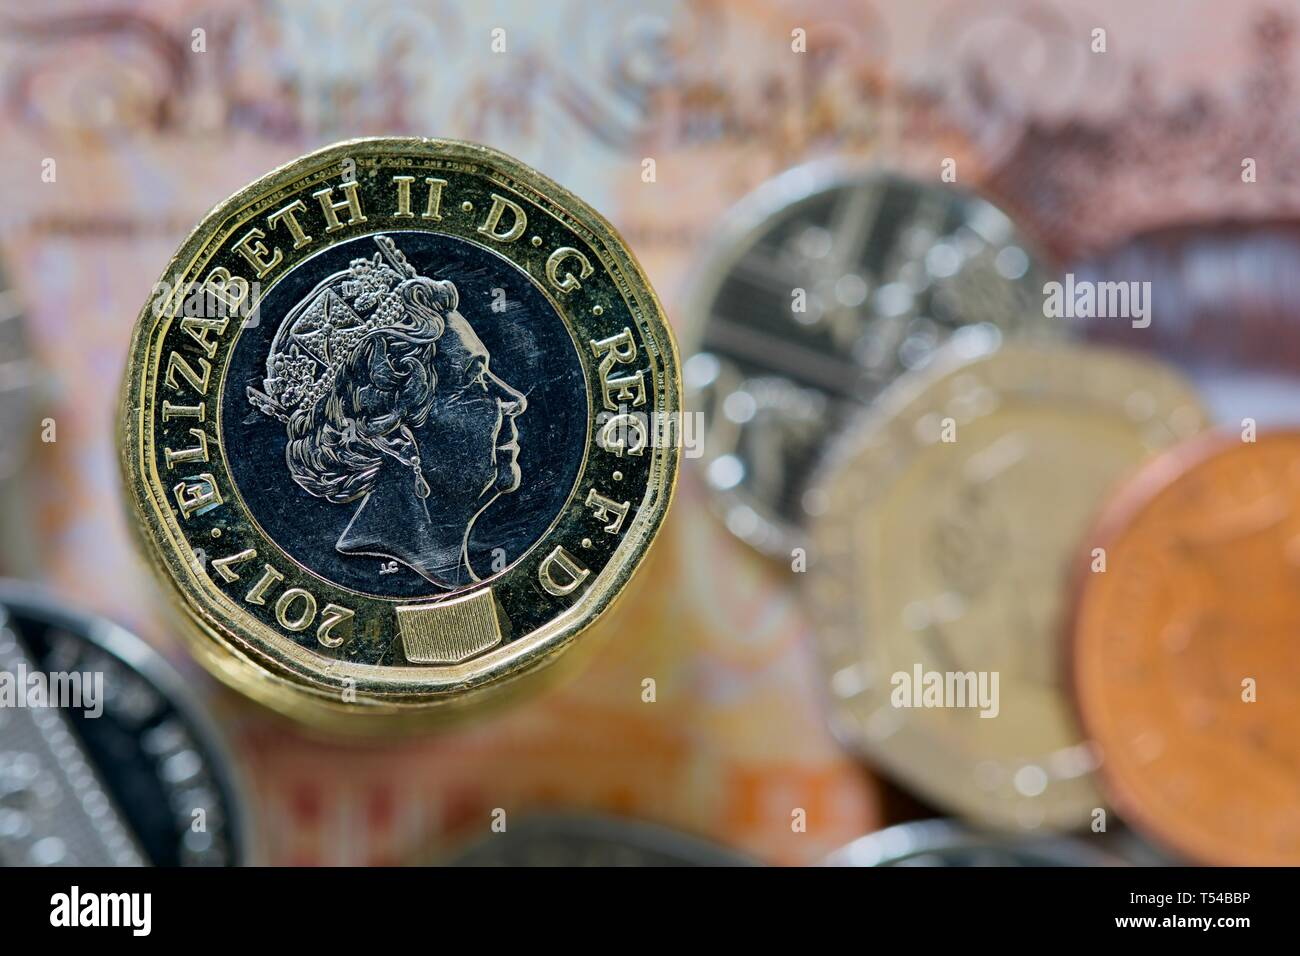 British currency, coins and banknote - Stock Image